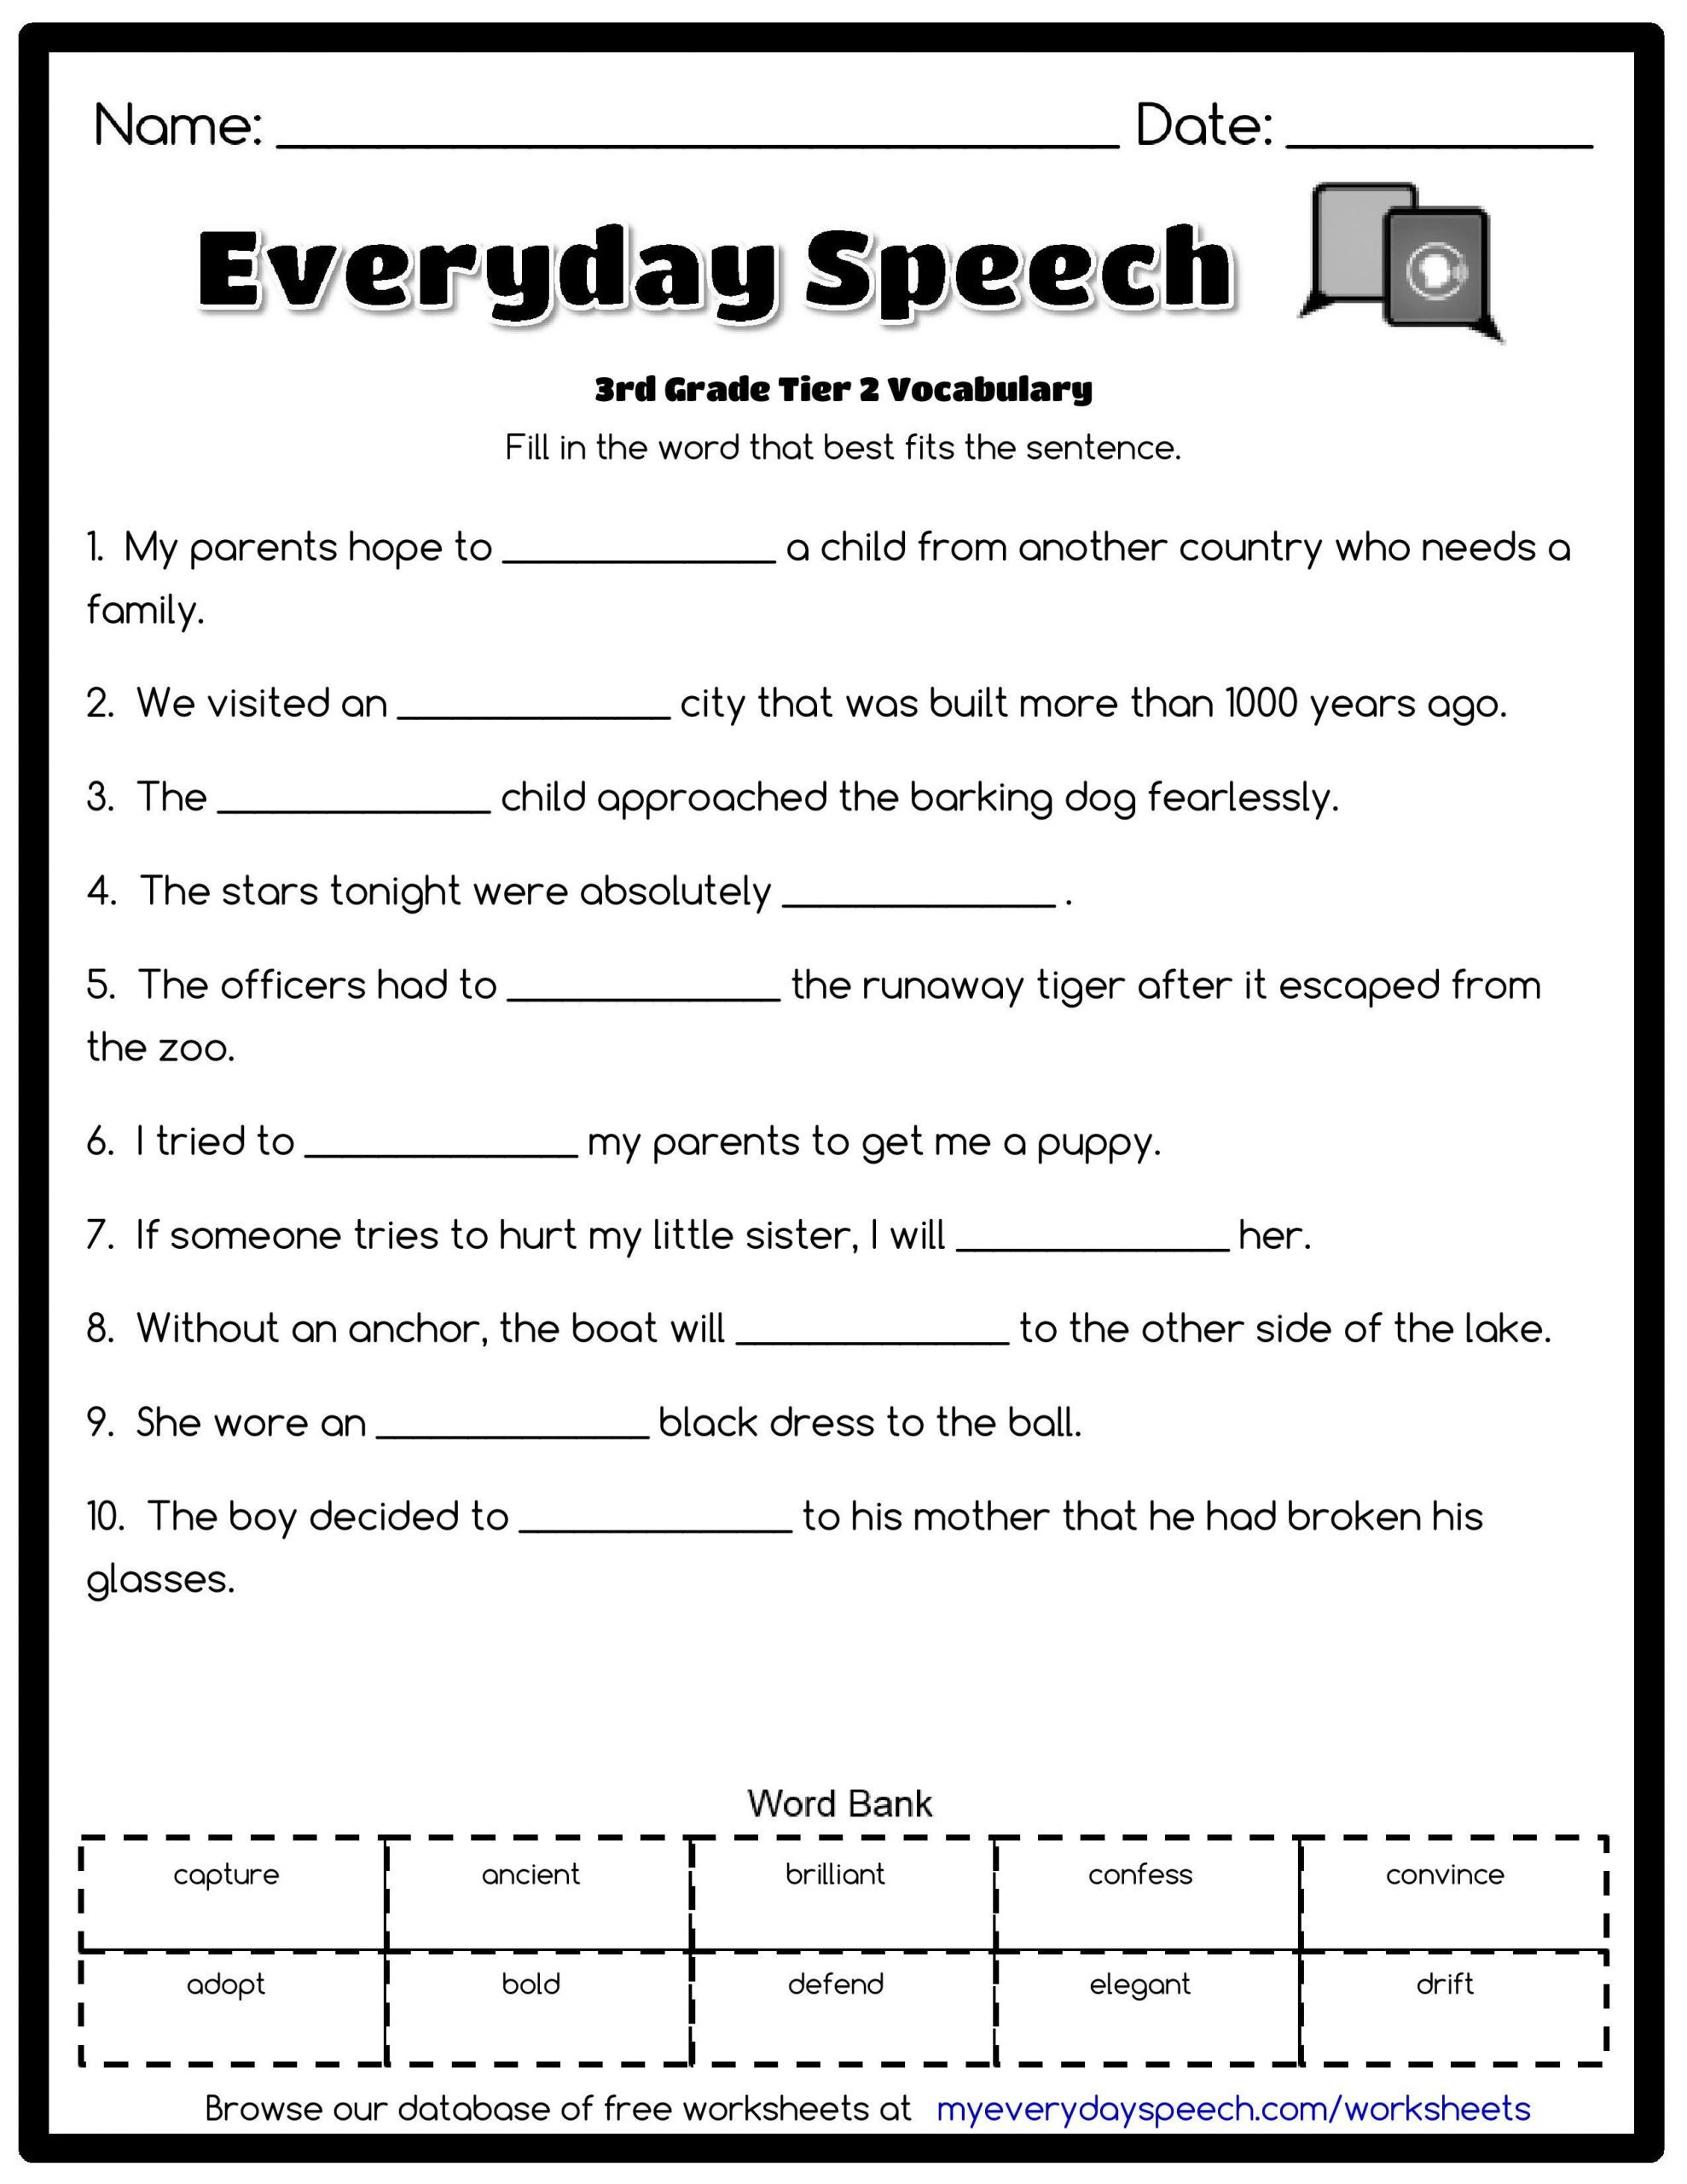 Language Arts Worksheets 8th Grade Periodic Figurative Language Worksheets Middle School